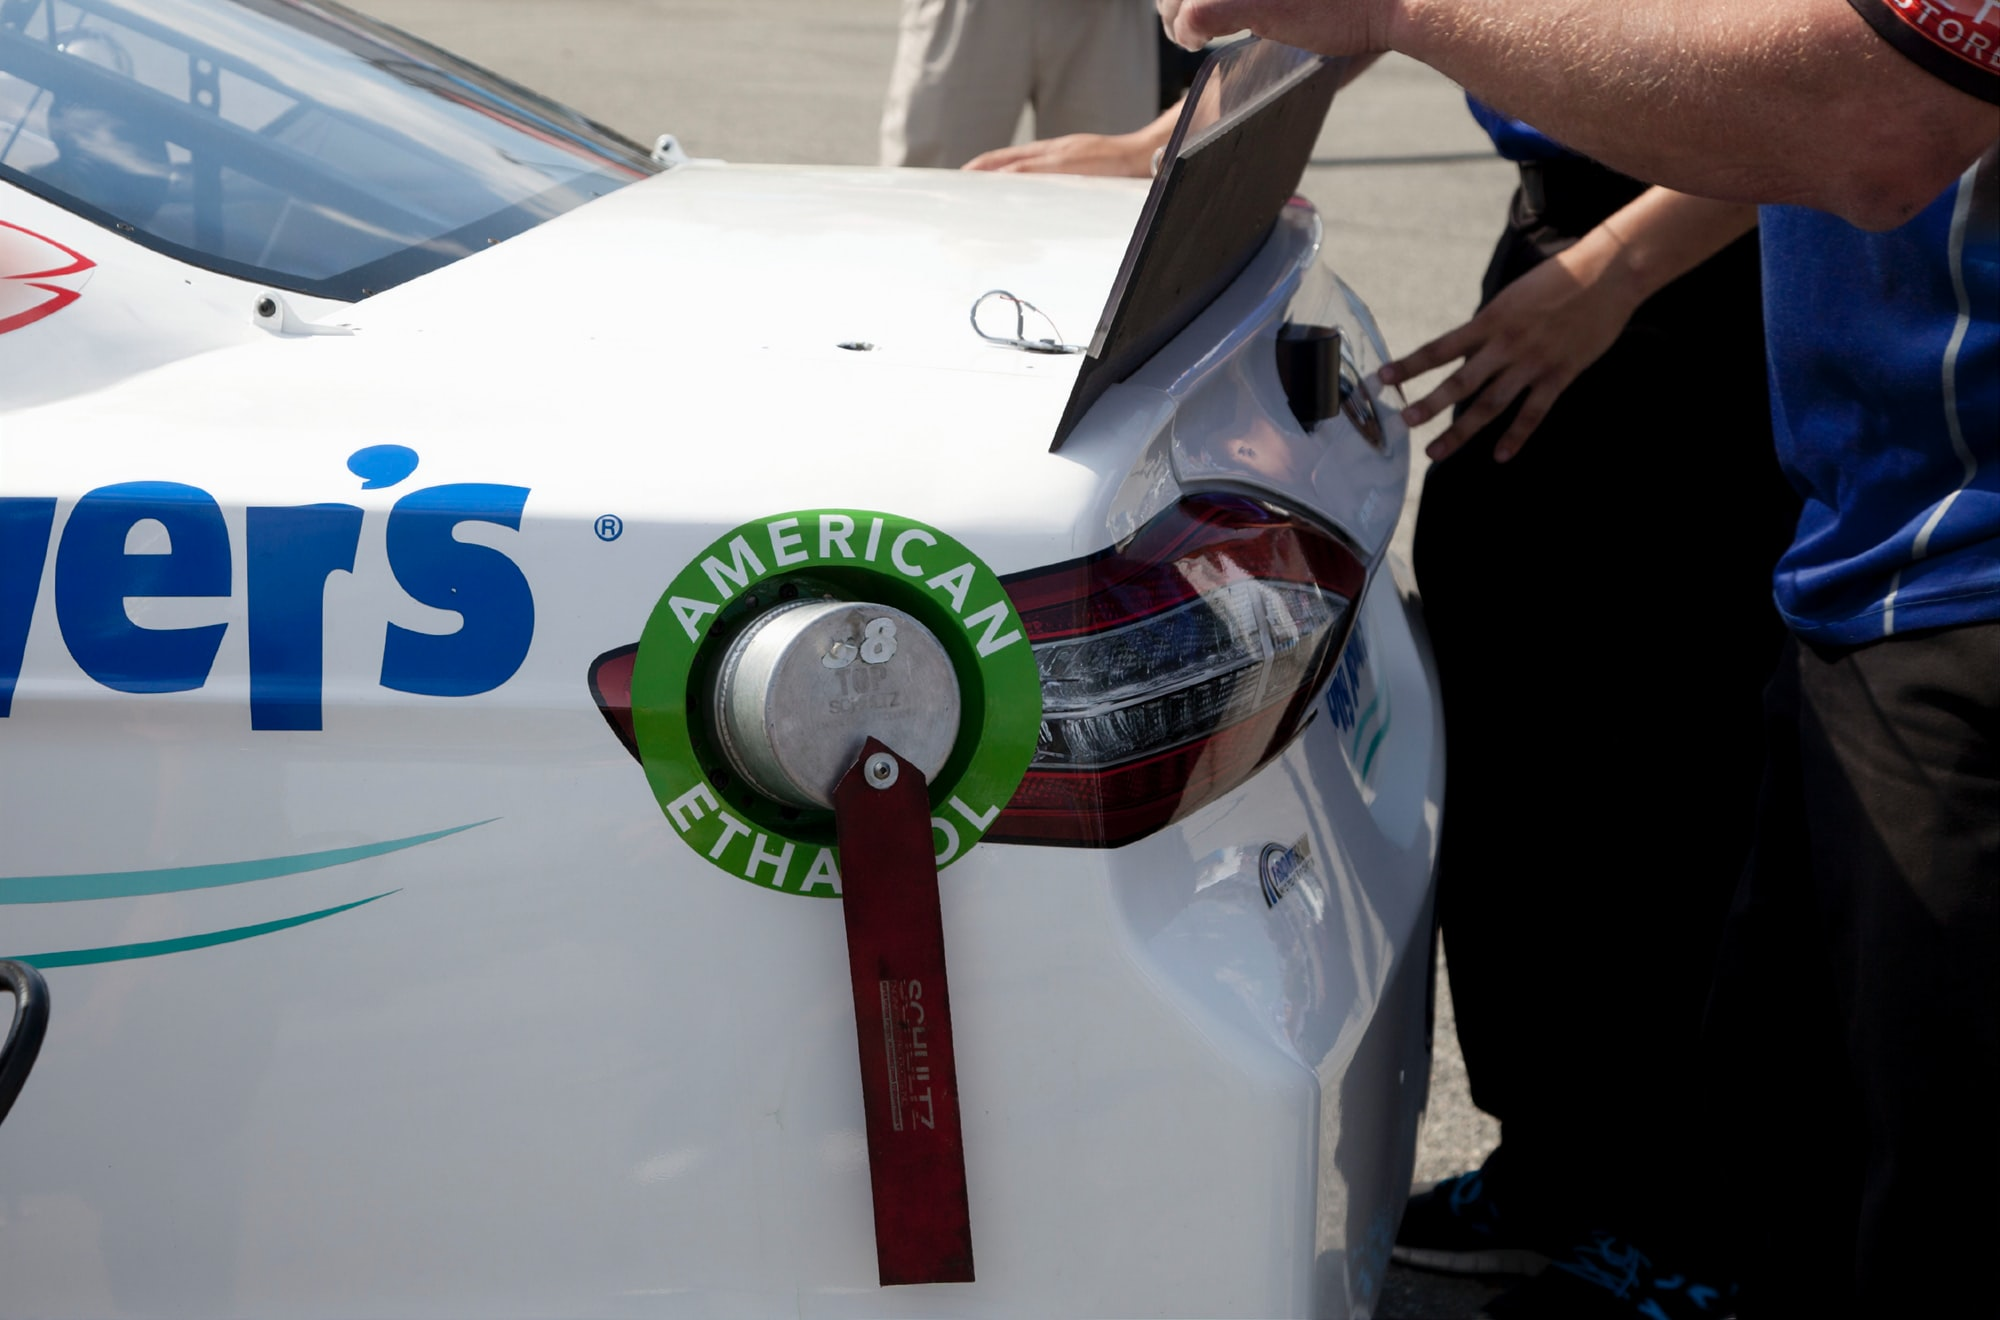 Since 2011, NASCAR has used E15 -- a biofuel blended with 15 percent American ethanol -- to fuel the cars. NASCAR has completed nearly 4 million miles using E15 and racing teams report an increase of up to 10+ horsepower. Photographer  Rebecca Matulka